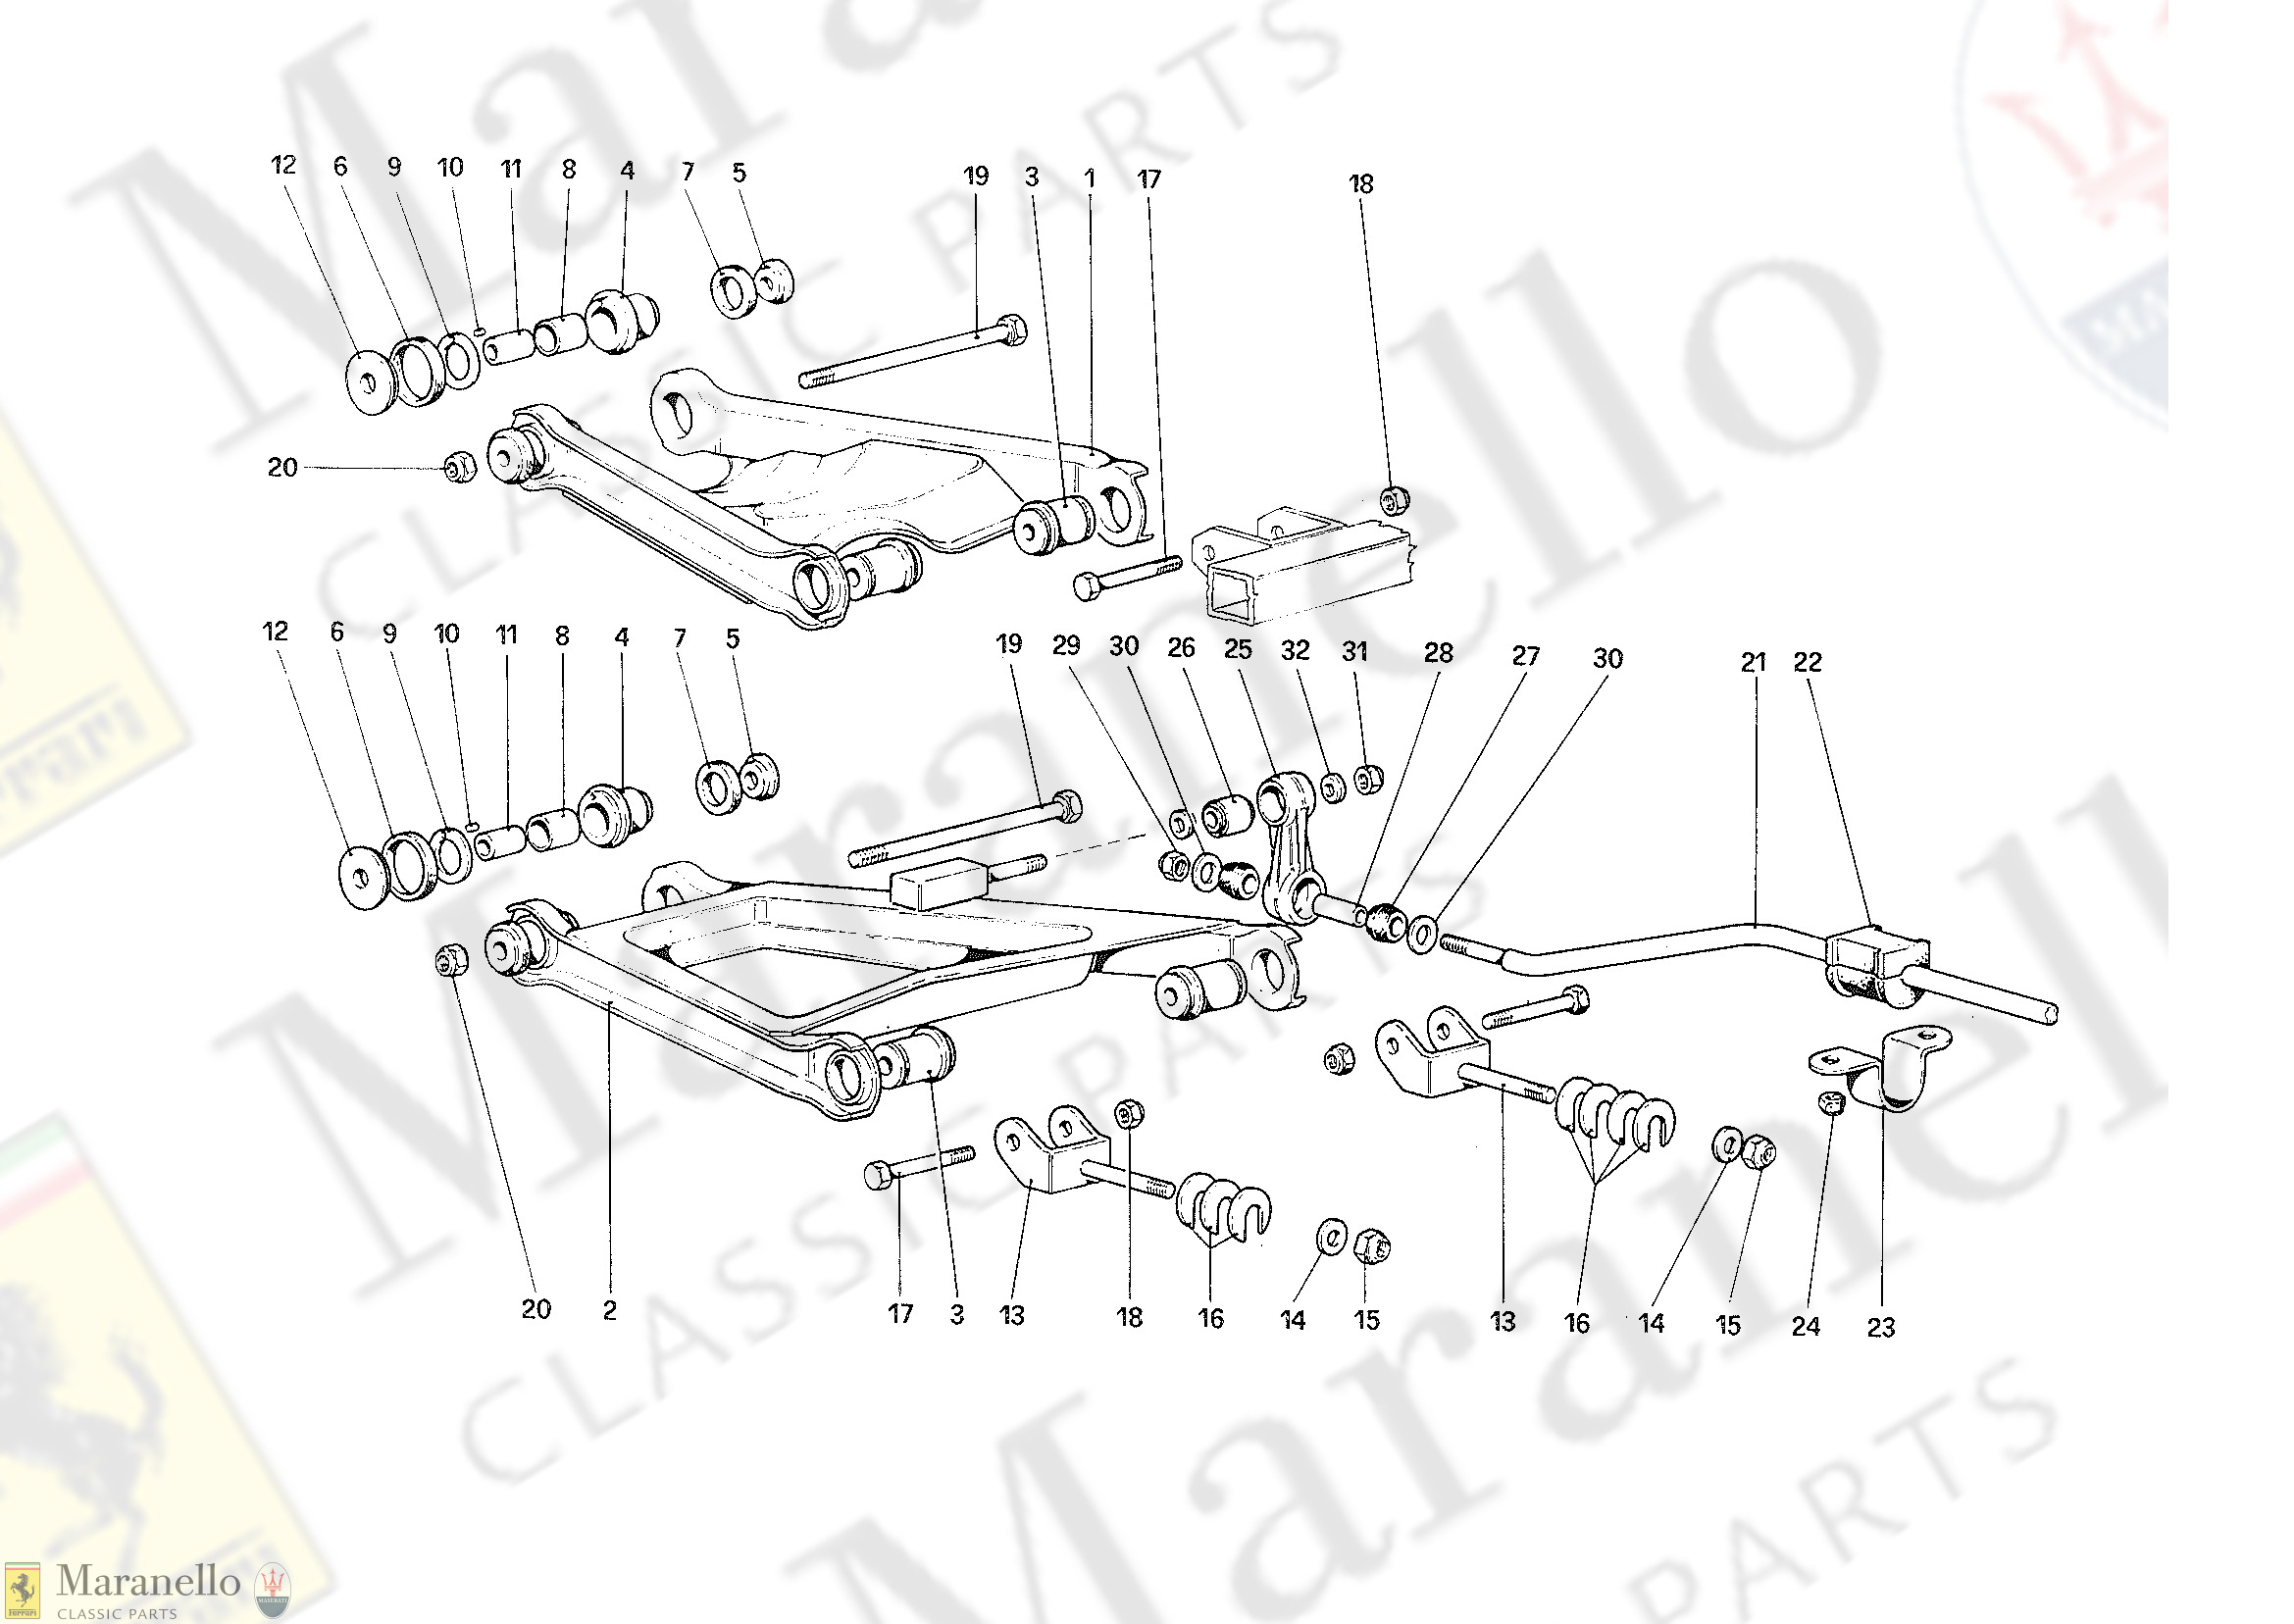 037 - Rear Suspension - Wishbones